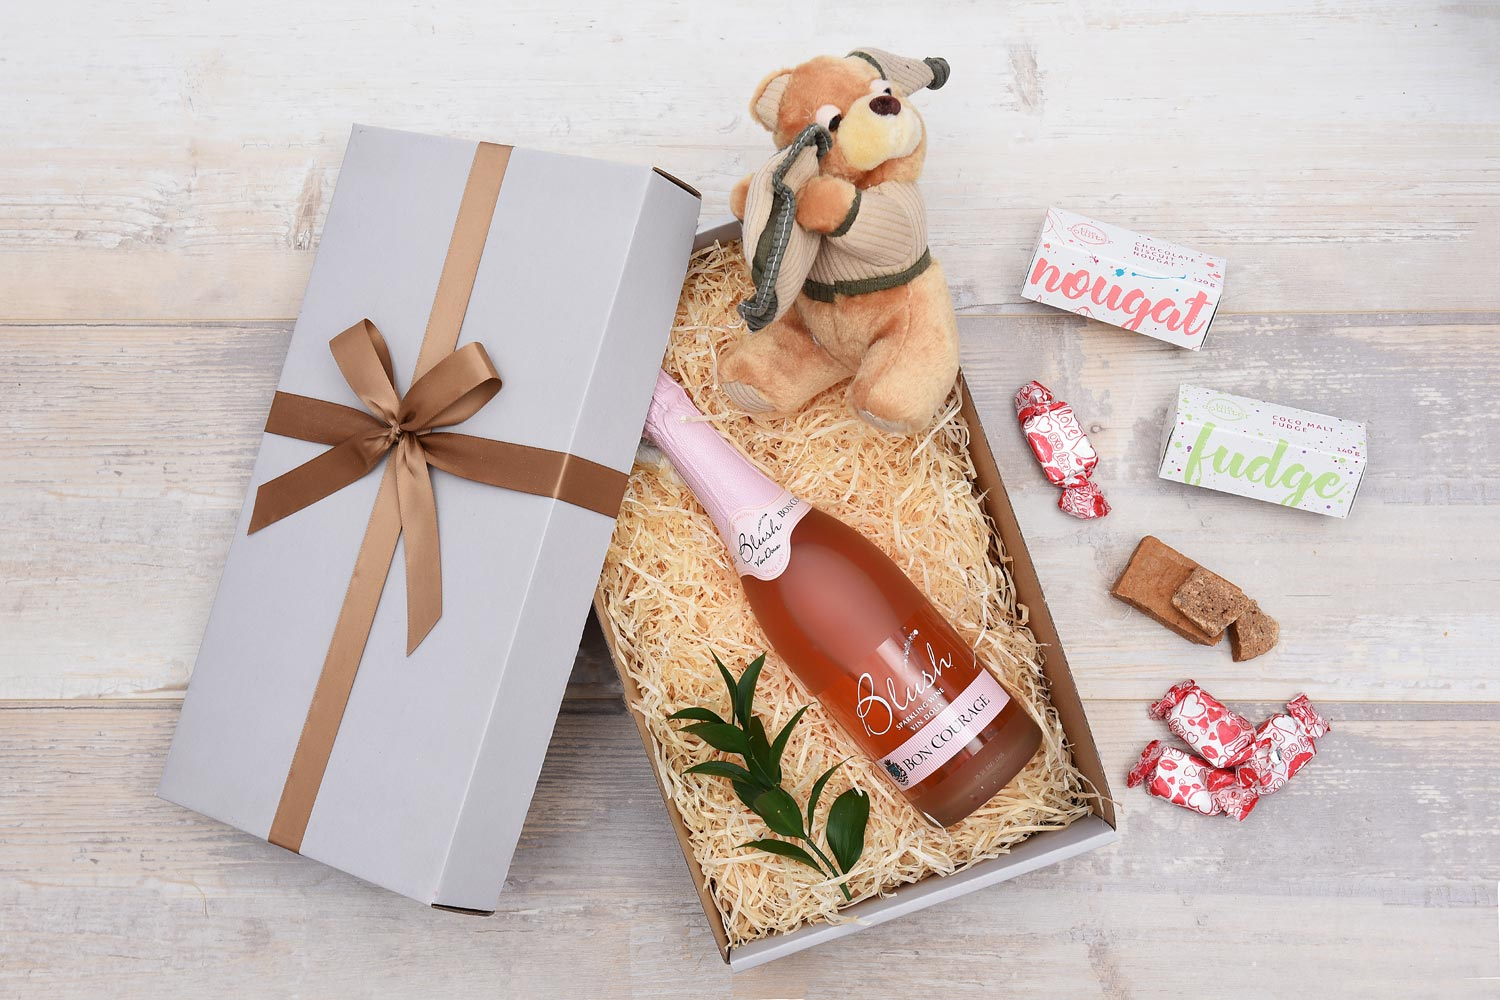 Bon Courage Blush & Sweets Romantic Gift | Hamper World